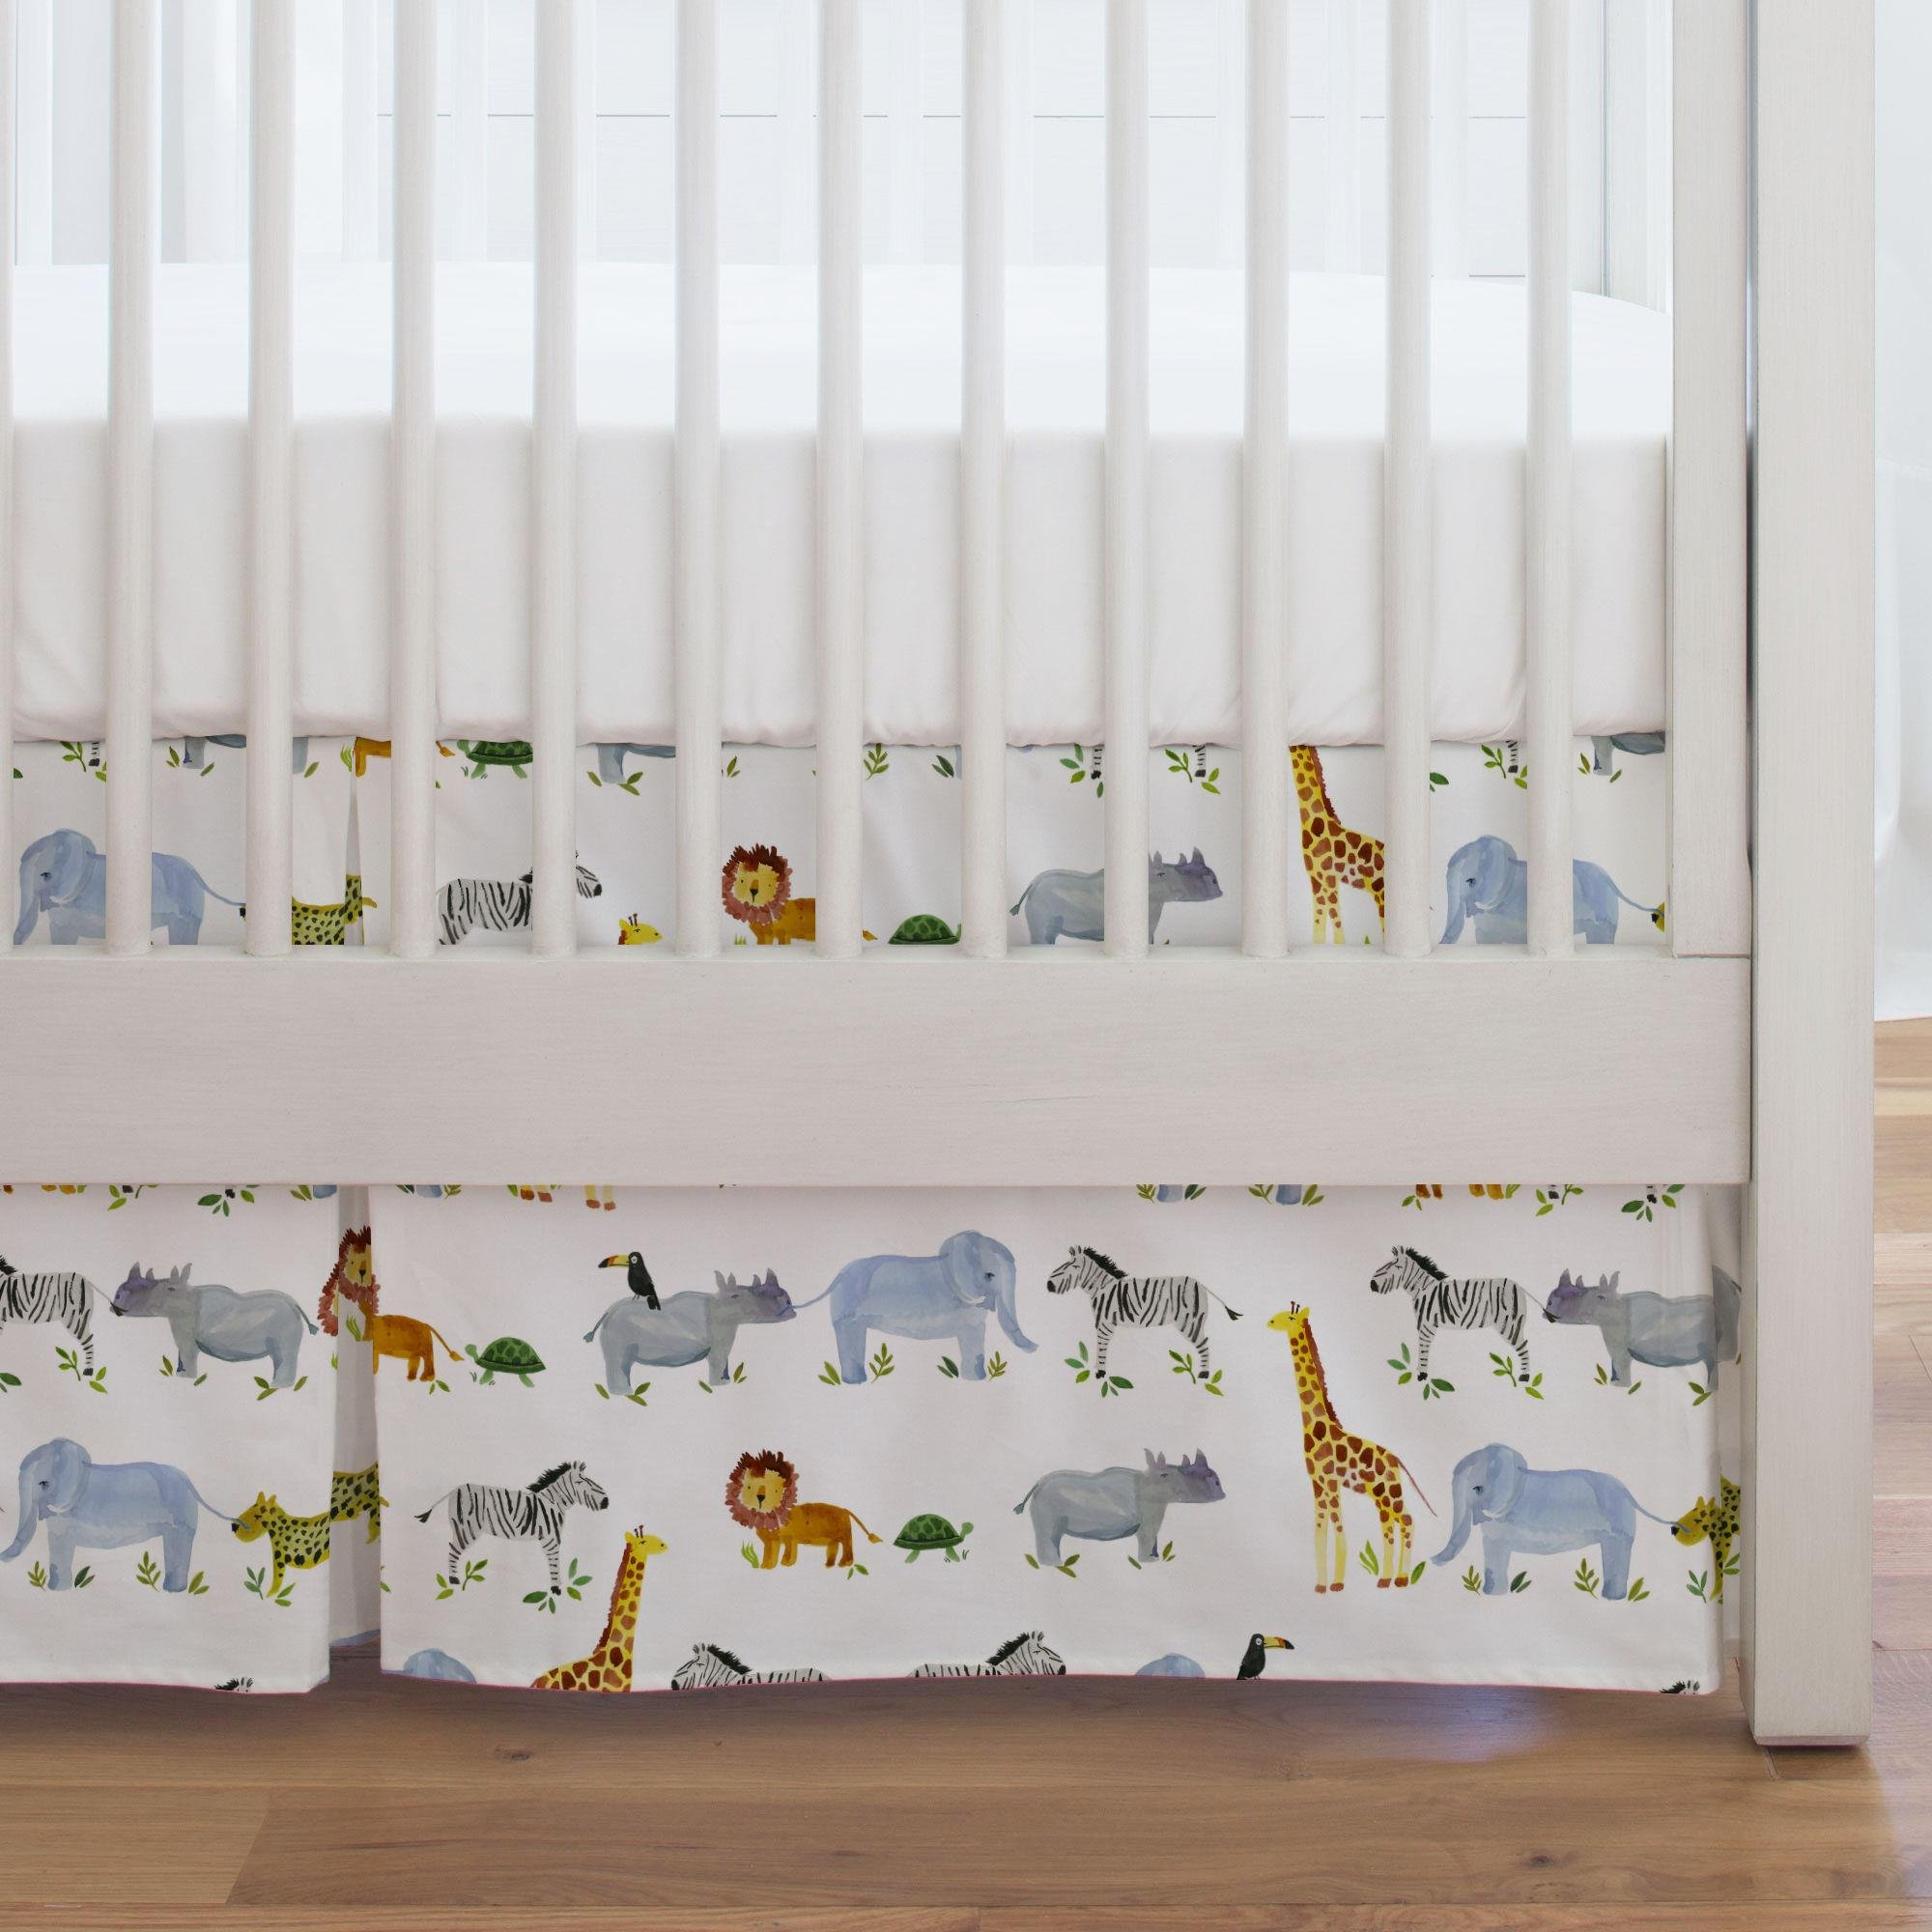 Carousel Designs Painted Zoo Crib Skirt Single-Pleat 17-Inch Length - Organic 100% Cotton Crib Skirt - Made in The USA by Carousel Designs